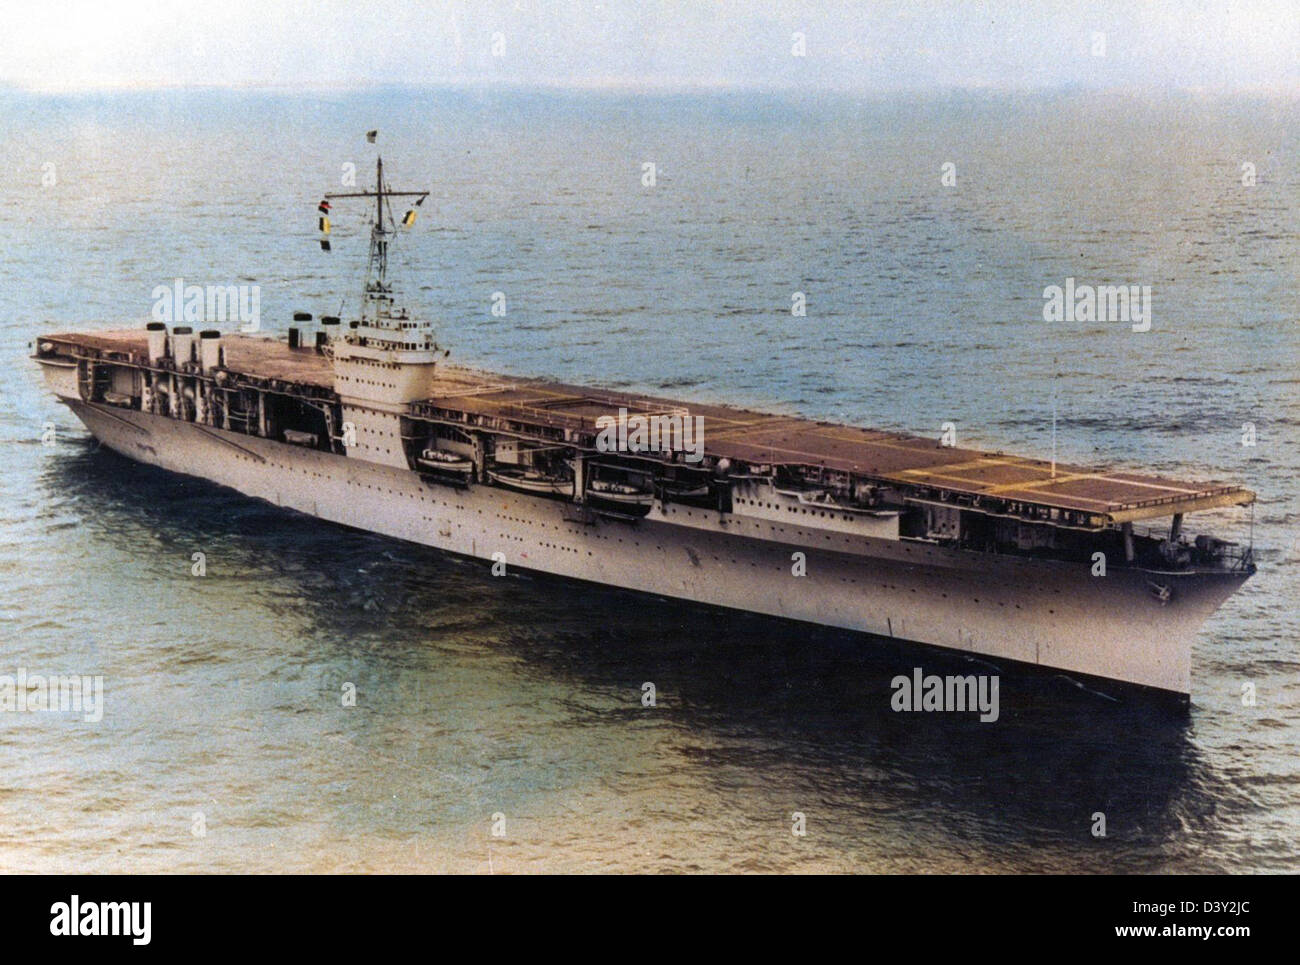 Uss Ranger Stock Photos & Uss Ranger Stock Images - Alamy